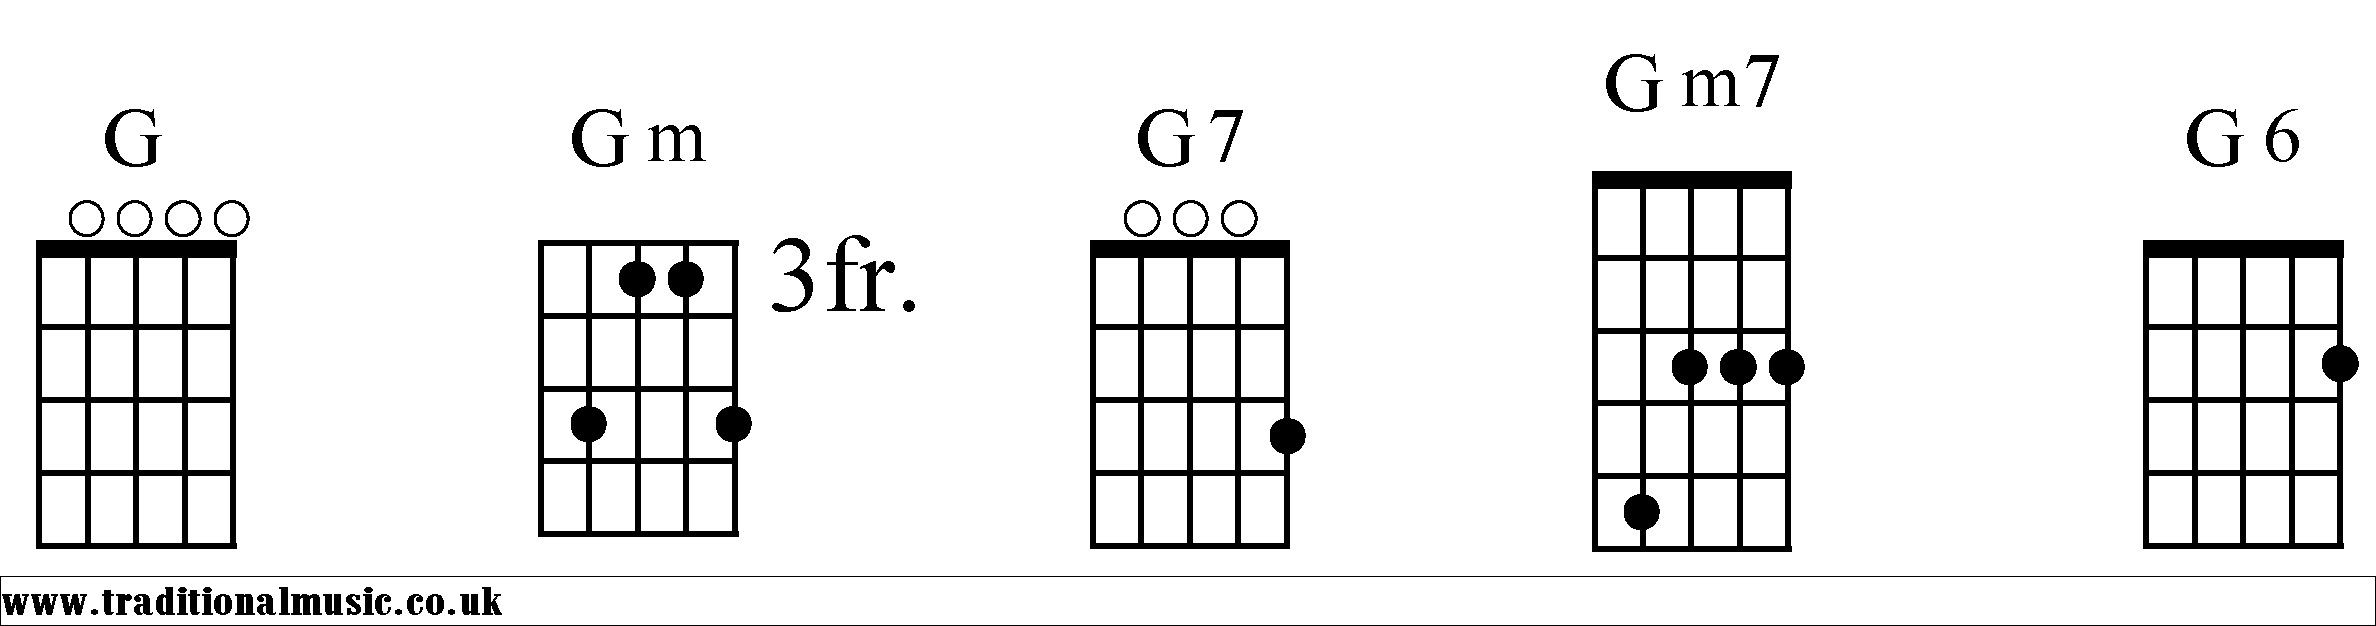 Chord charts for 5 string banjo G chords